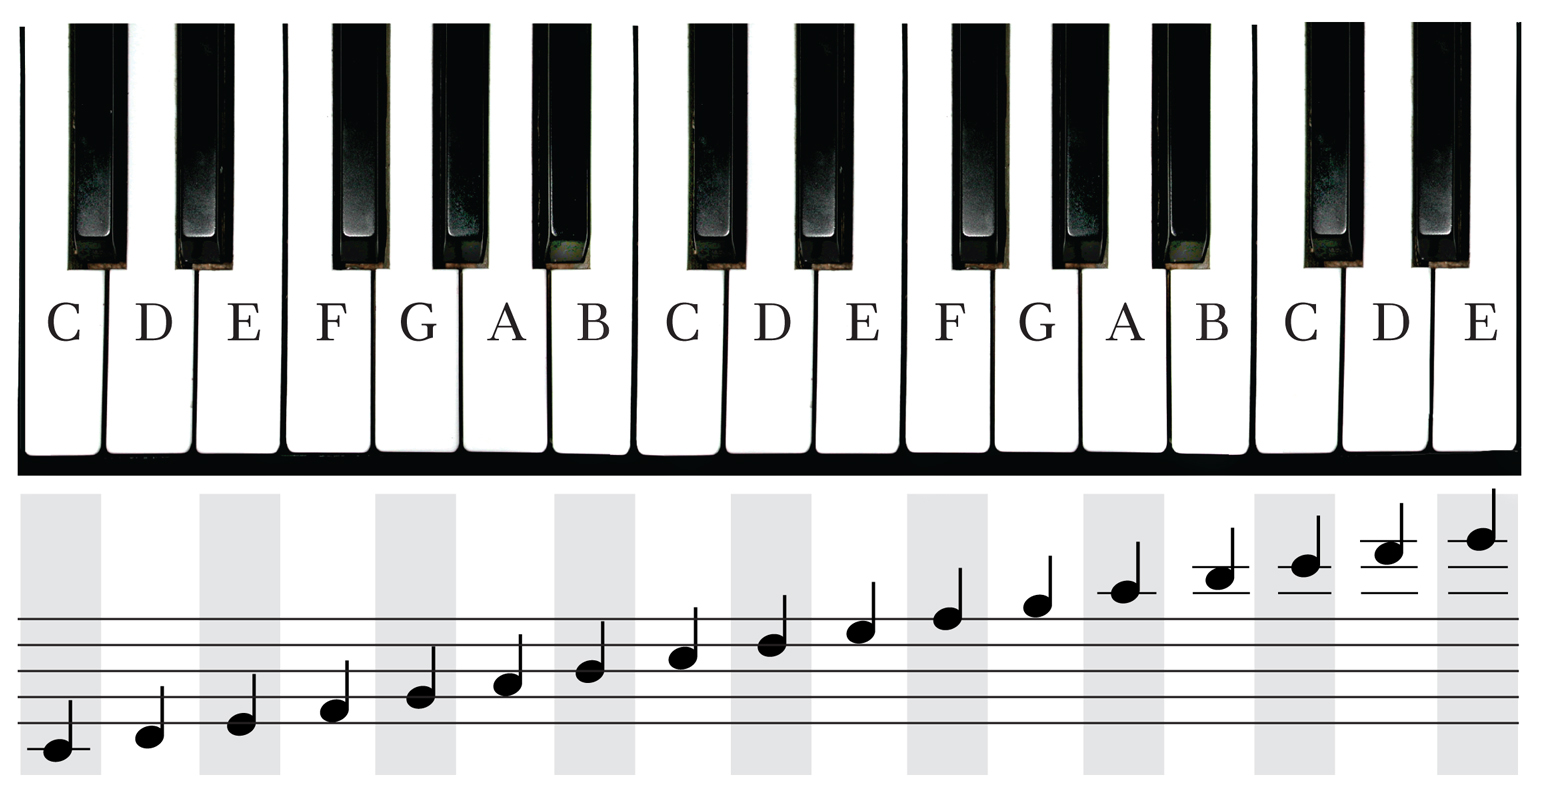 Piano Keyboard Images - Cliparts.co